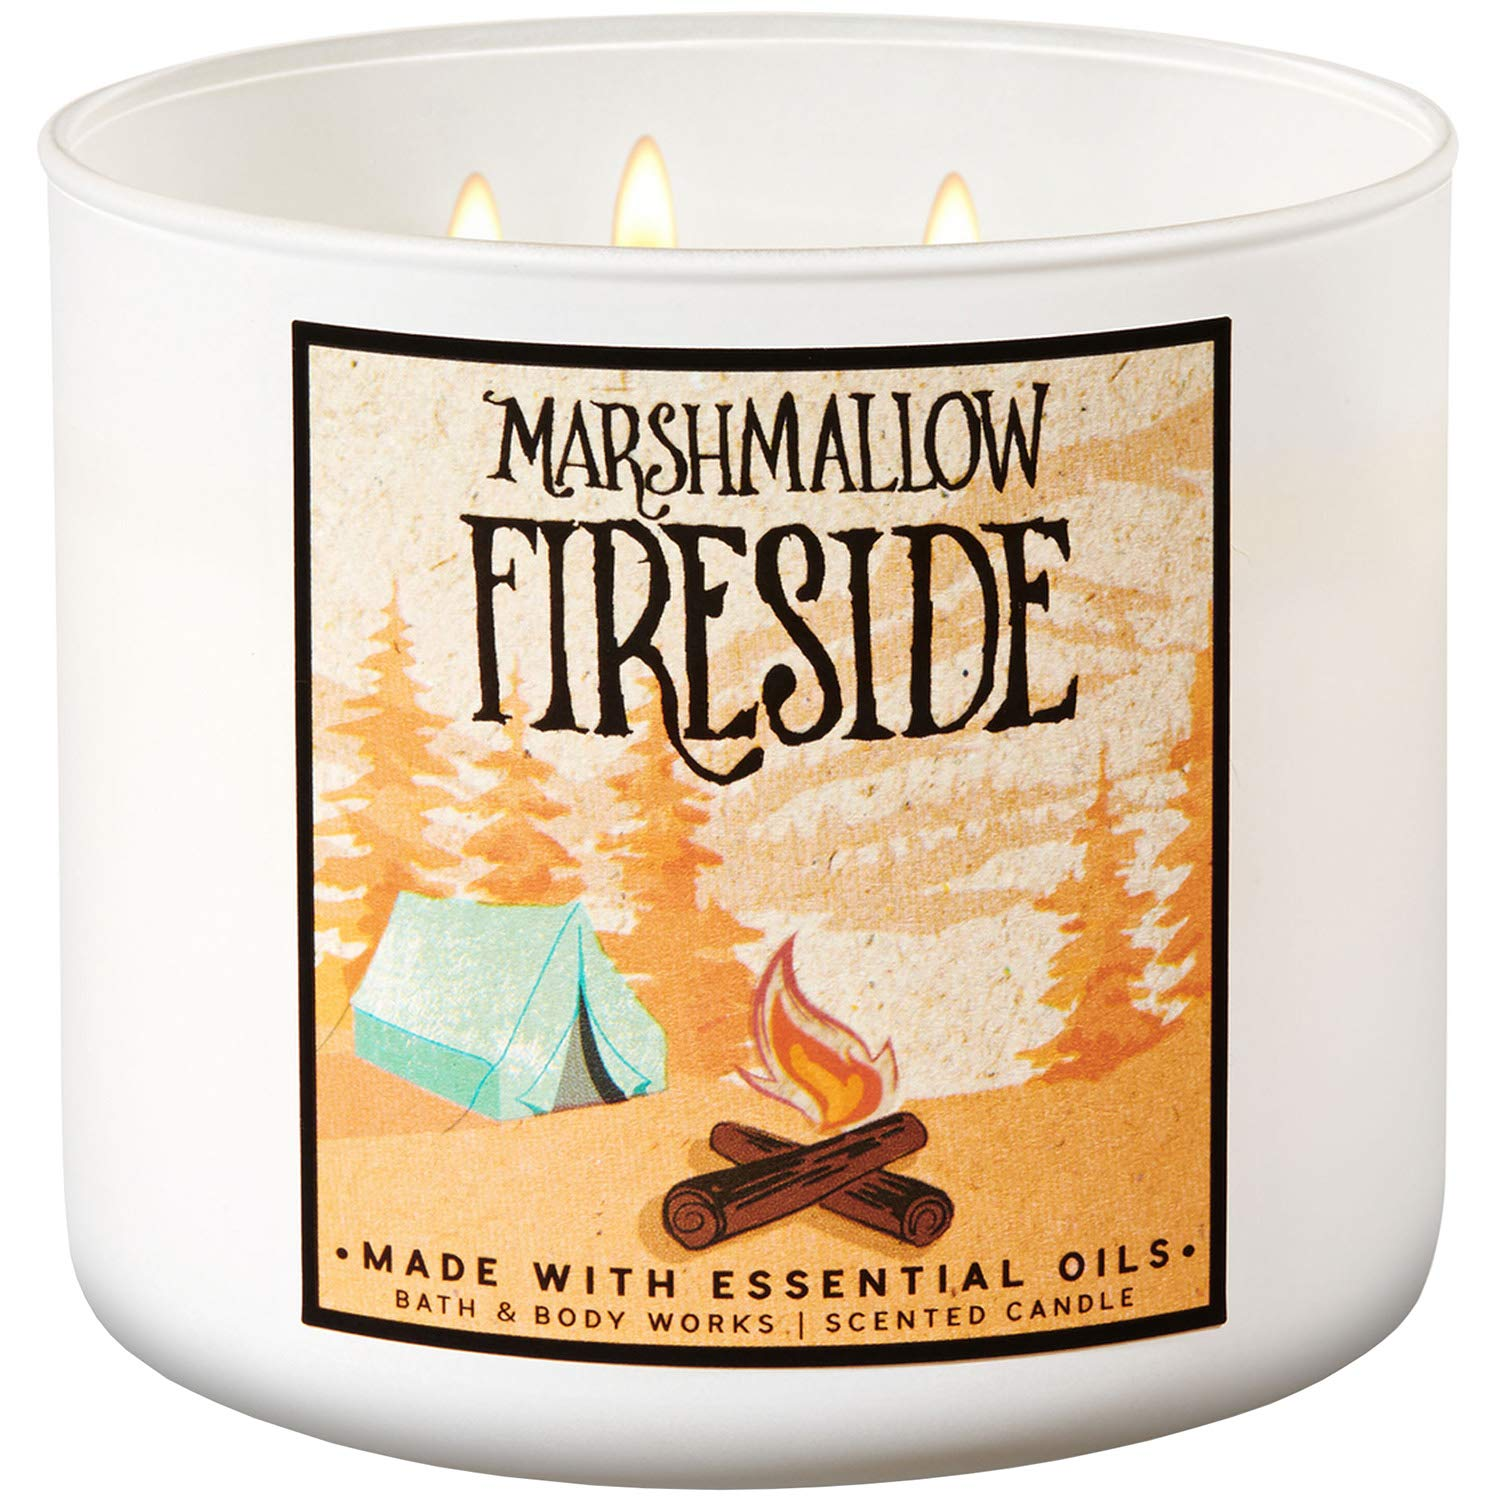 Bath and Body Works 2018 Holiday Limited Edition 3-Wick Candle (Marshmallow Fireside) by Bath & Body Works